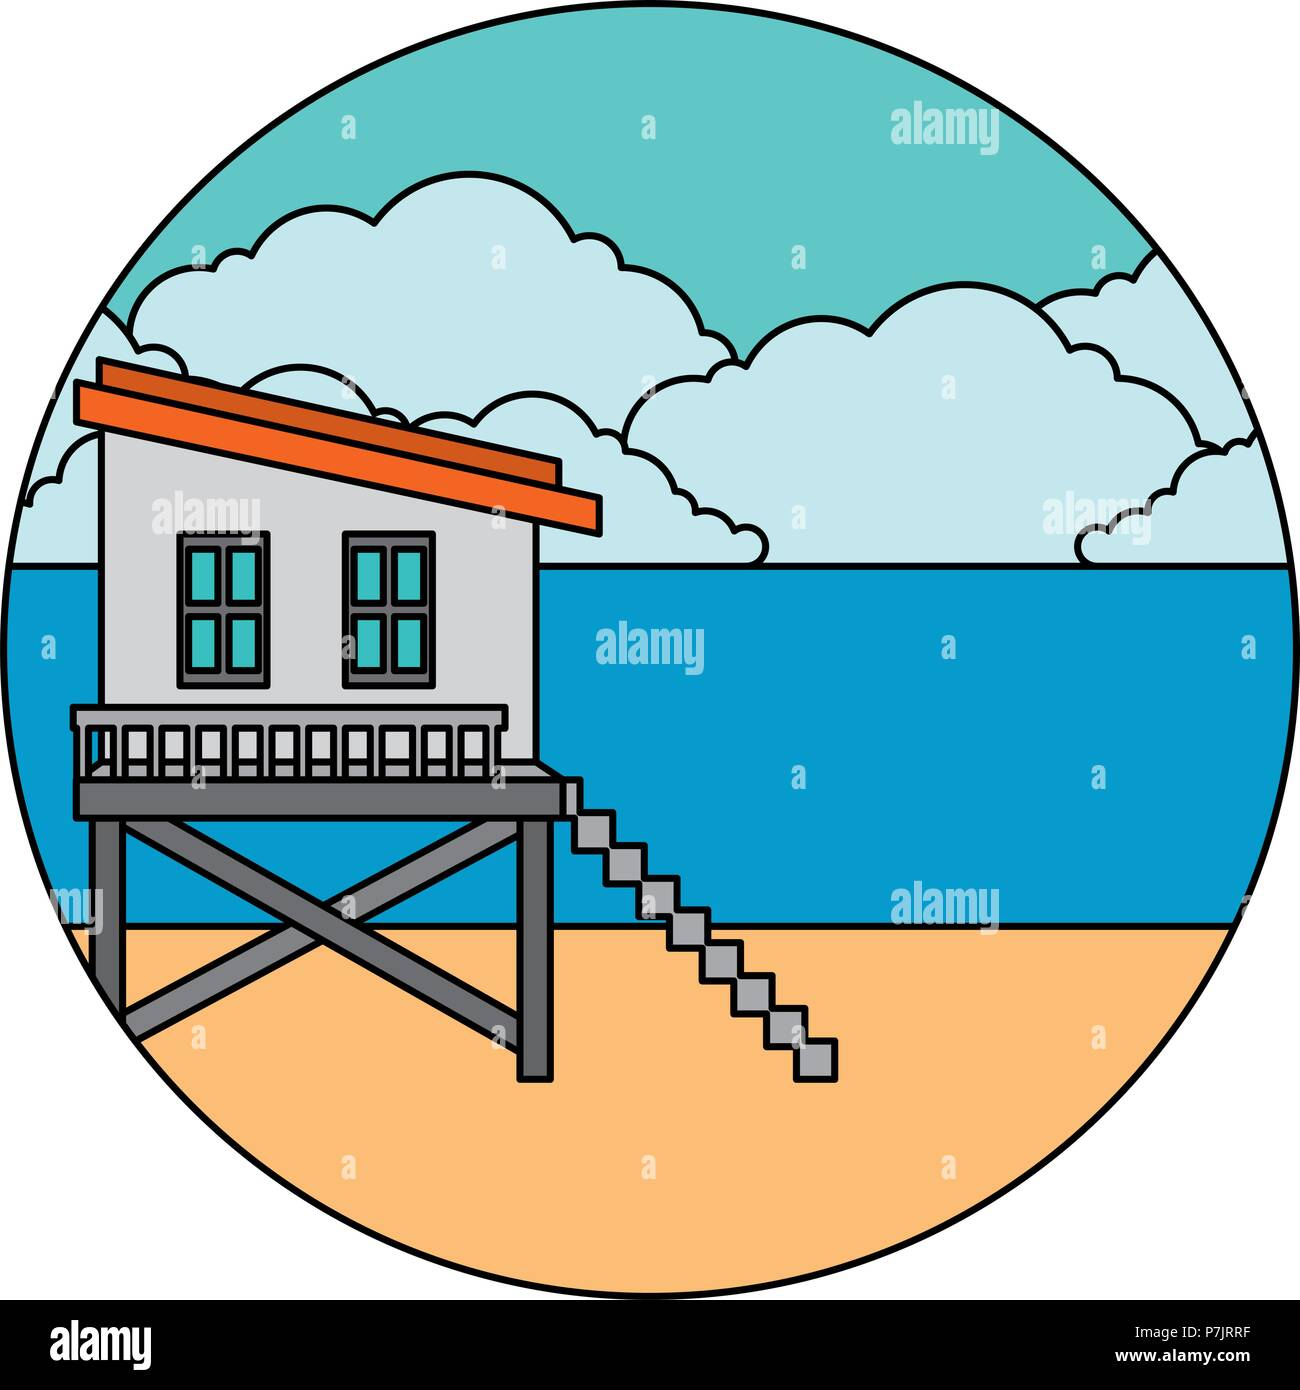 3f3c233ba248 Lifeguard House Stock Vector Images - Alamy